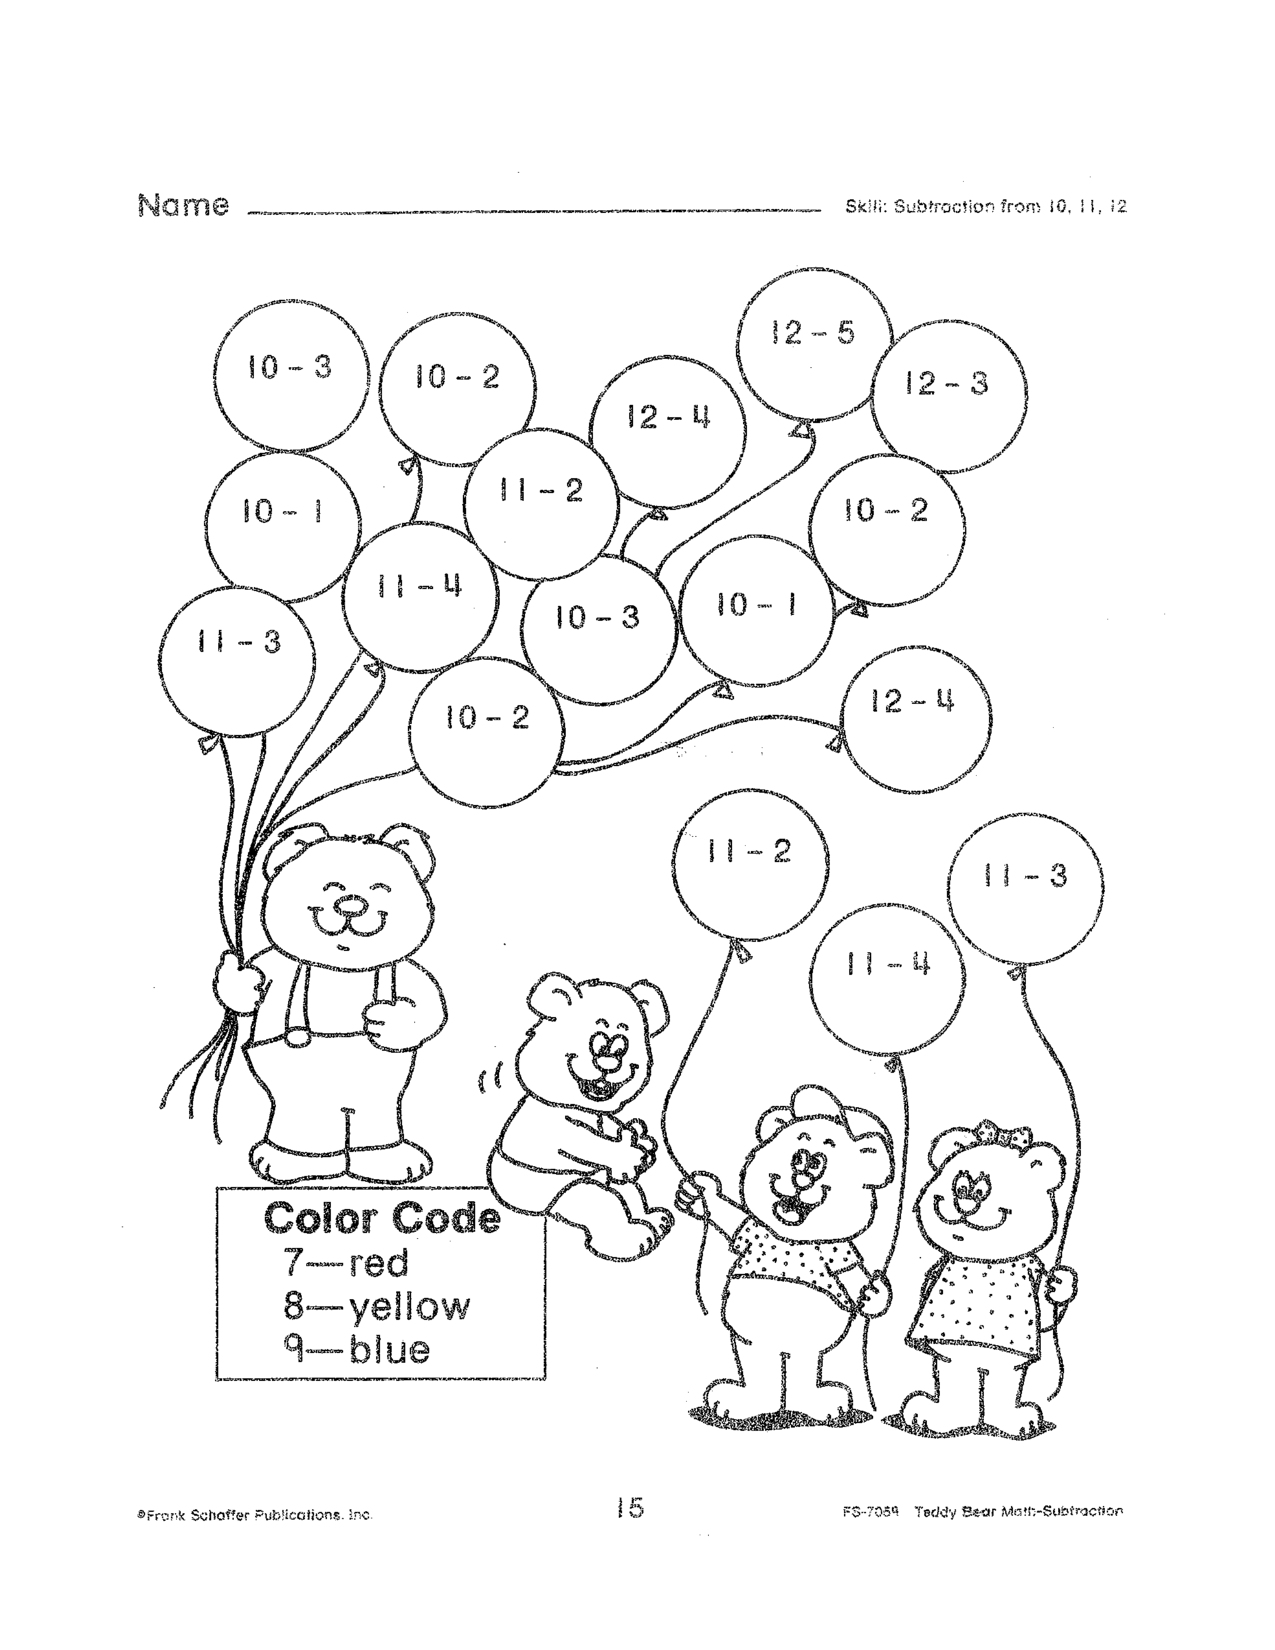 Worksheet Math For 2nd Graders Printable 2nd grade math worksheets printable addition intrepidpath 5 best images of free 2